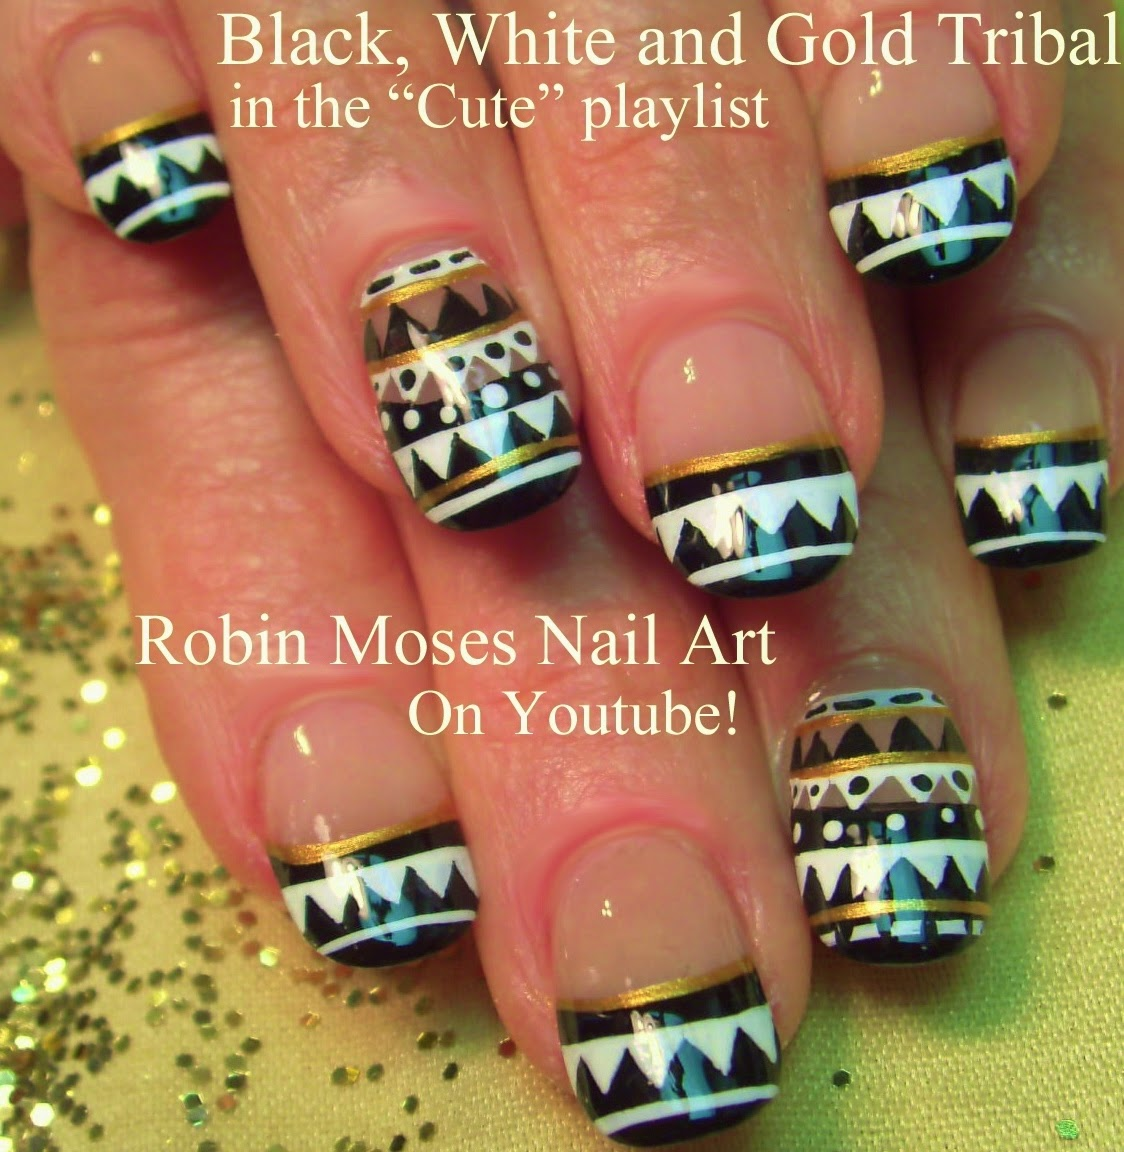 Robin moses nail art aztec nails tribal nail art aztec nail aztec nails tribal nail art aztec nail art moroccan nail art navajo nails navajo design navajo tutorial aztec design aztec nail art how to prinsesfo Choice Image